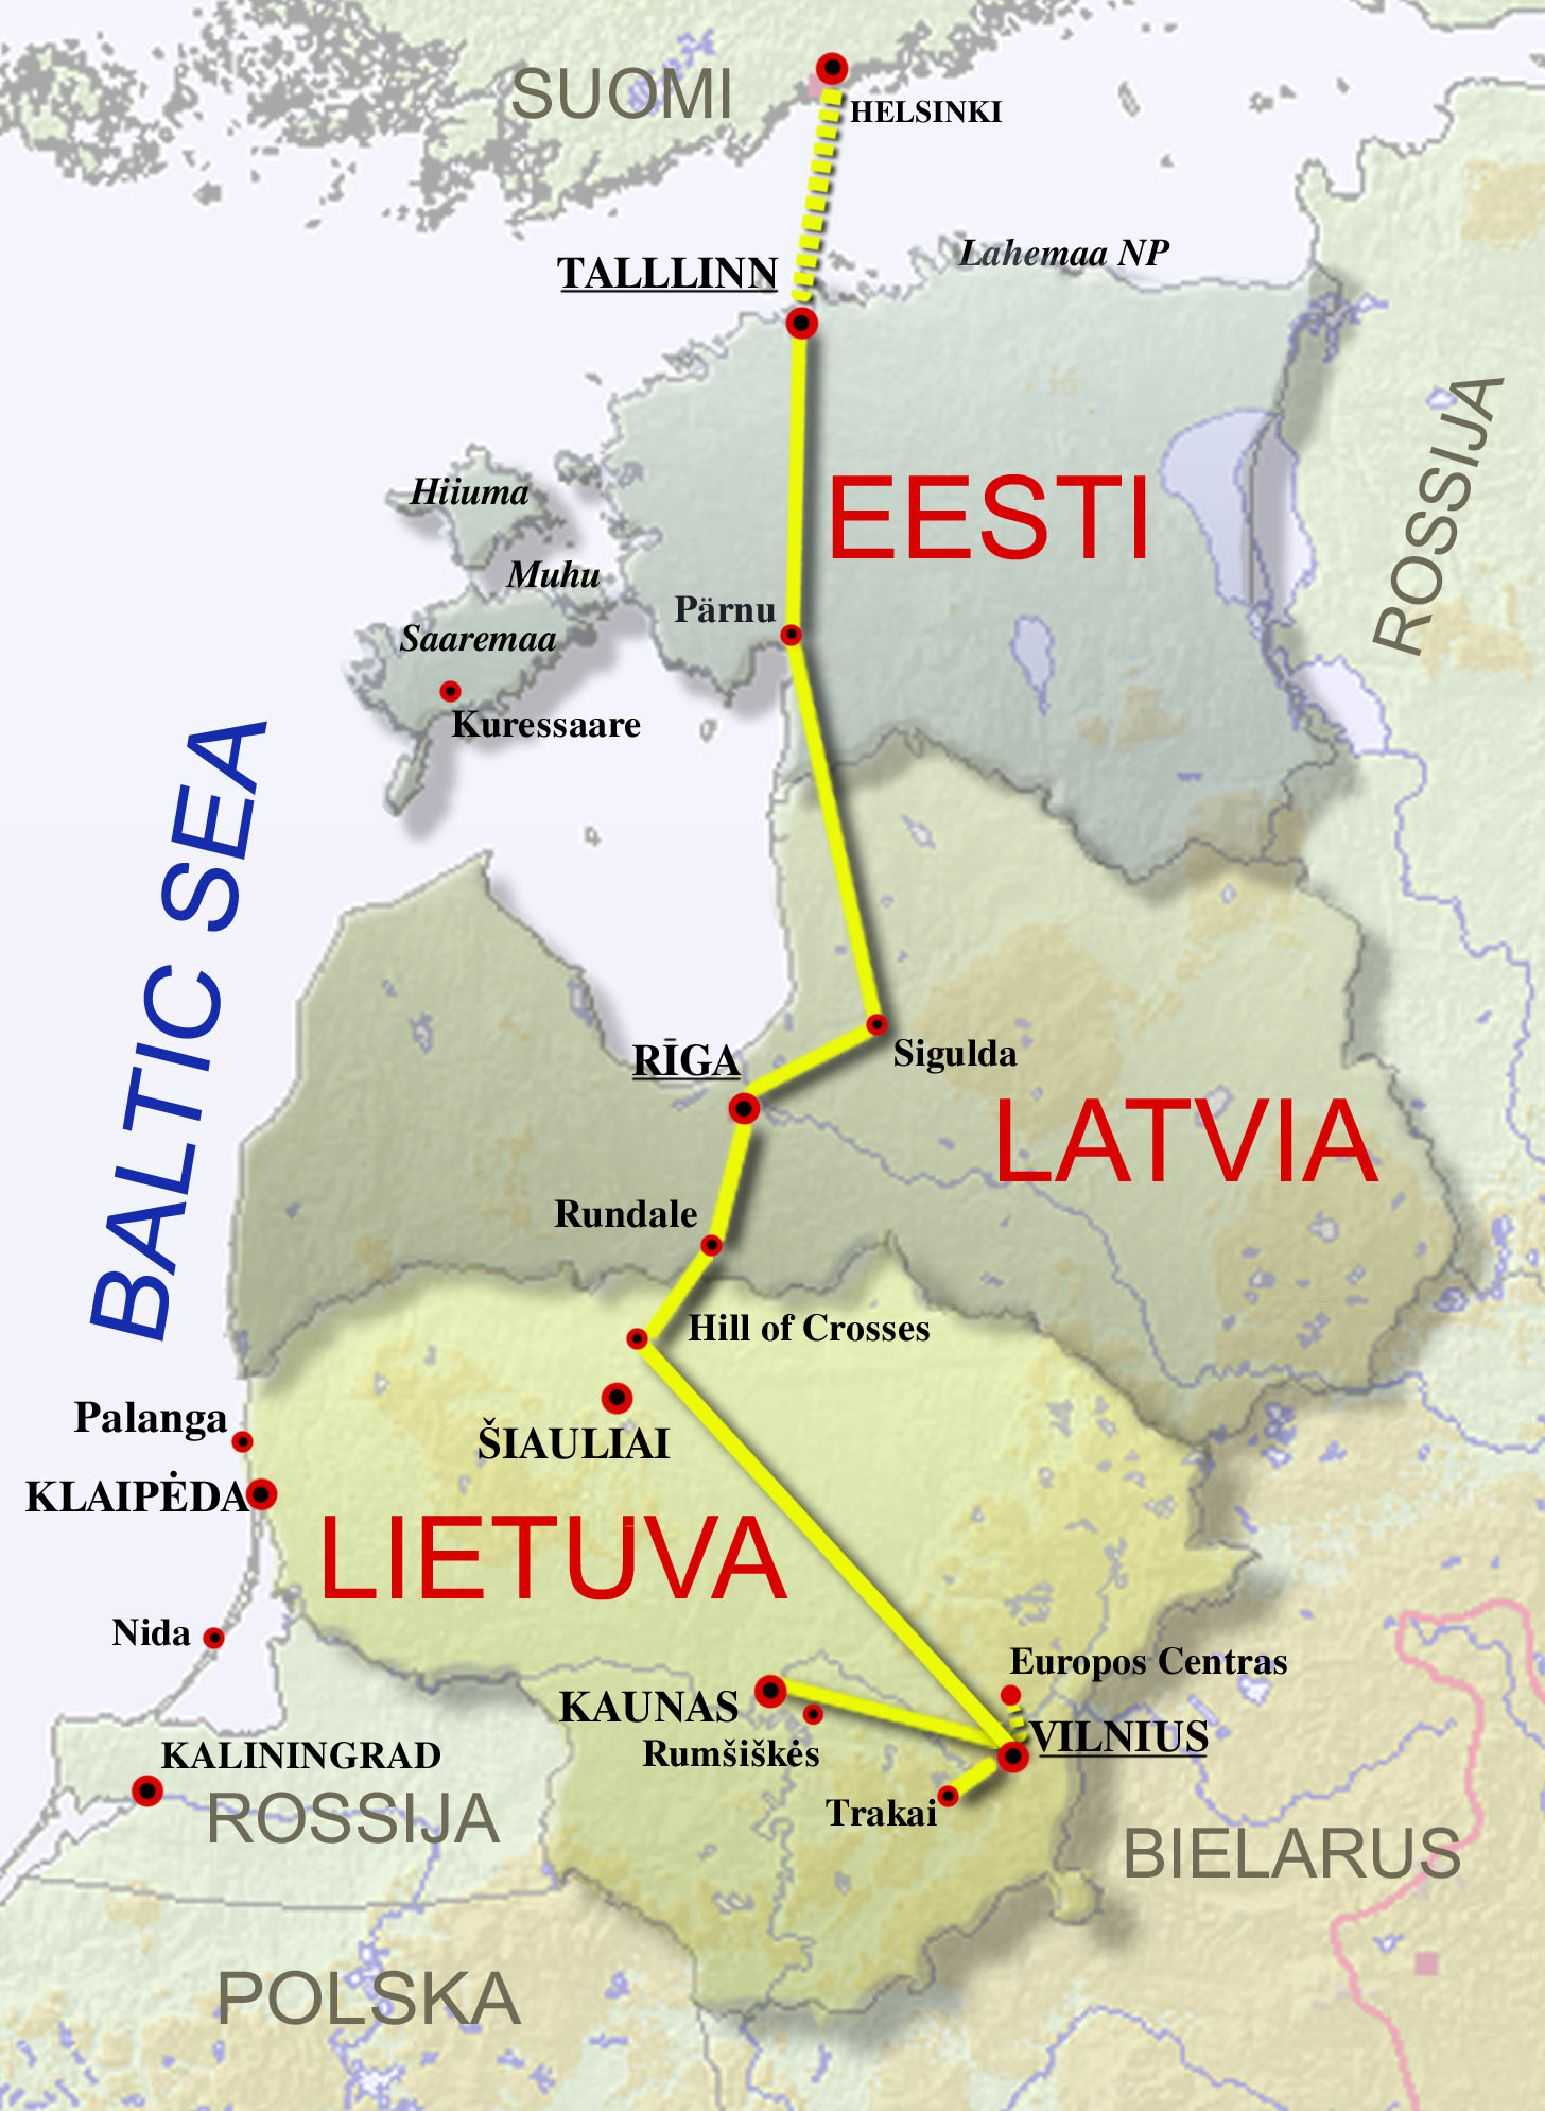 Baltic Capitals World Heritage Sites InviaBaltic